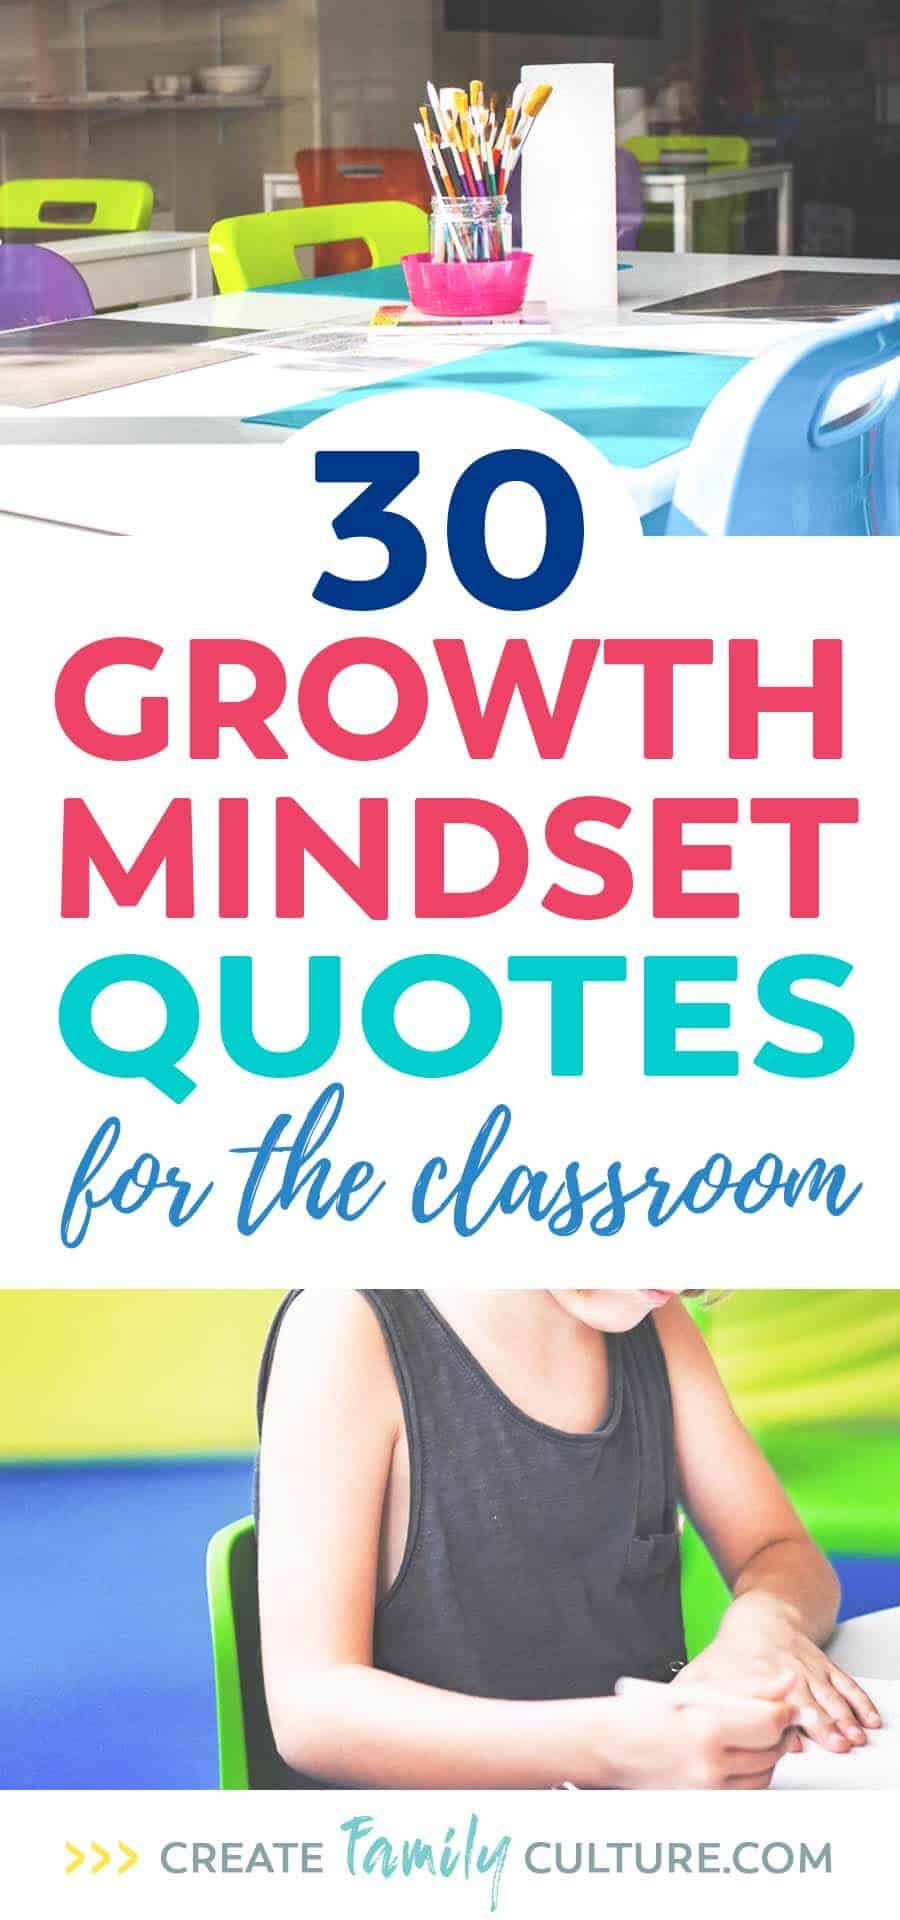 30 Inspiring Growth Mindset quotes for kids. Inspiring quotes for children | Growth Mindset in the classroom | Parenting Tips and Teaching Resources, Growth Mindset for Homeschool | Motivation for elementary school students | Free Printable